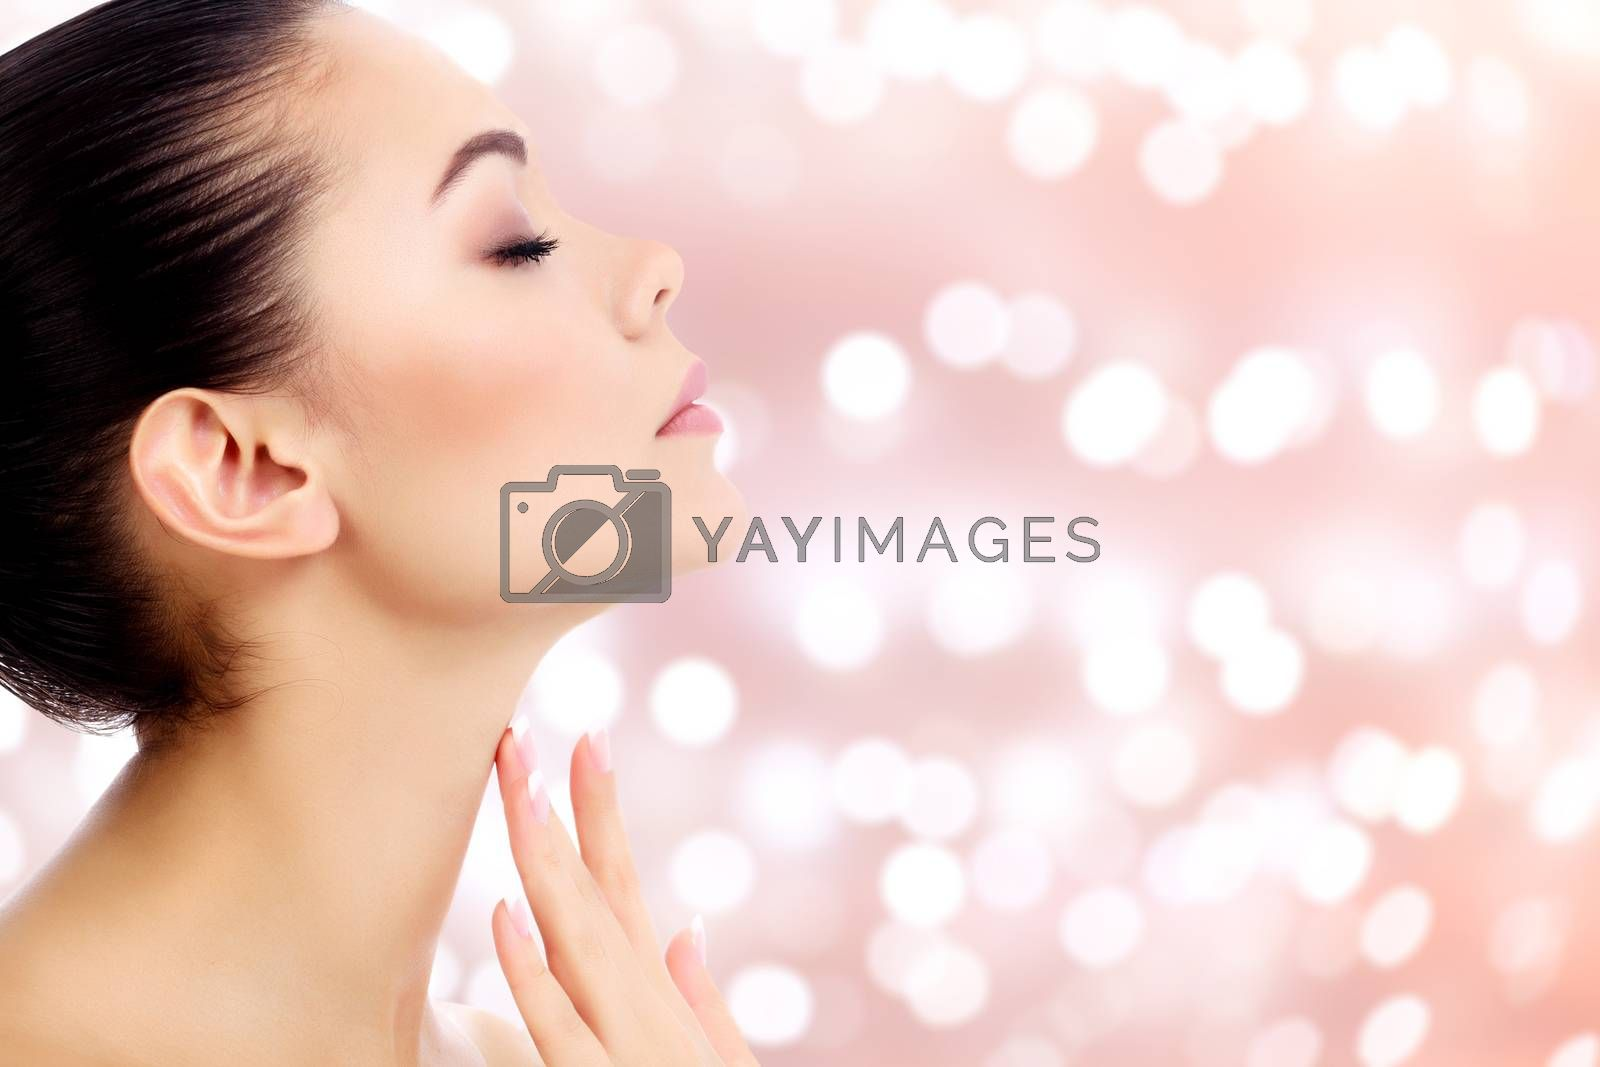 Young female touches her neck on an abstract background with blurred lights